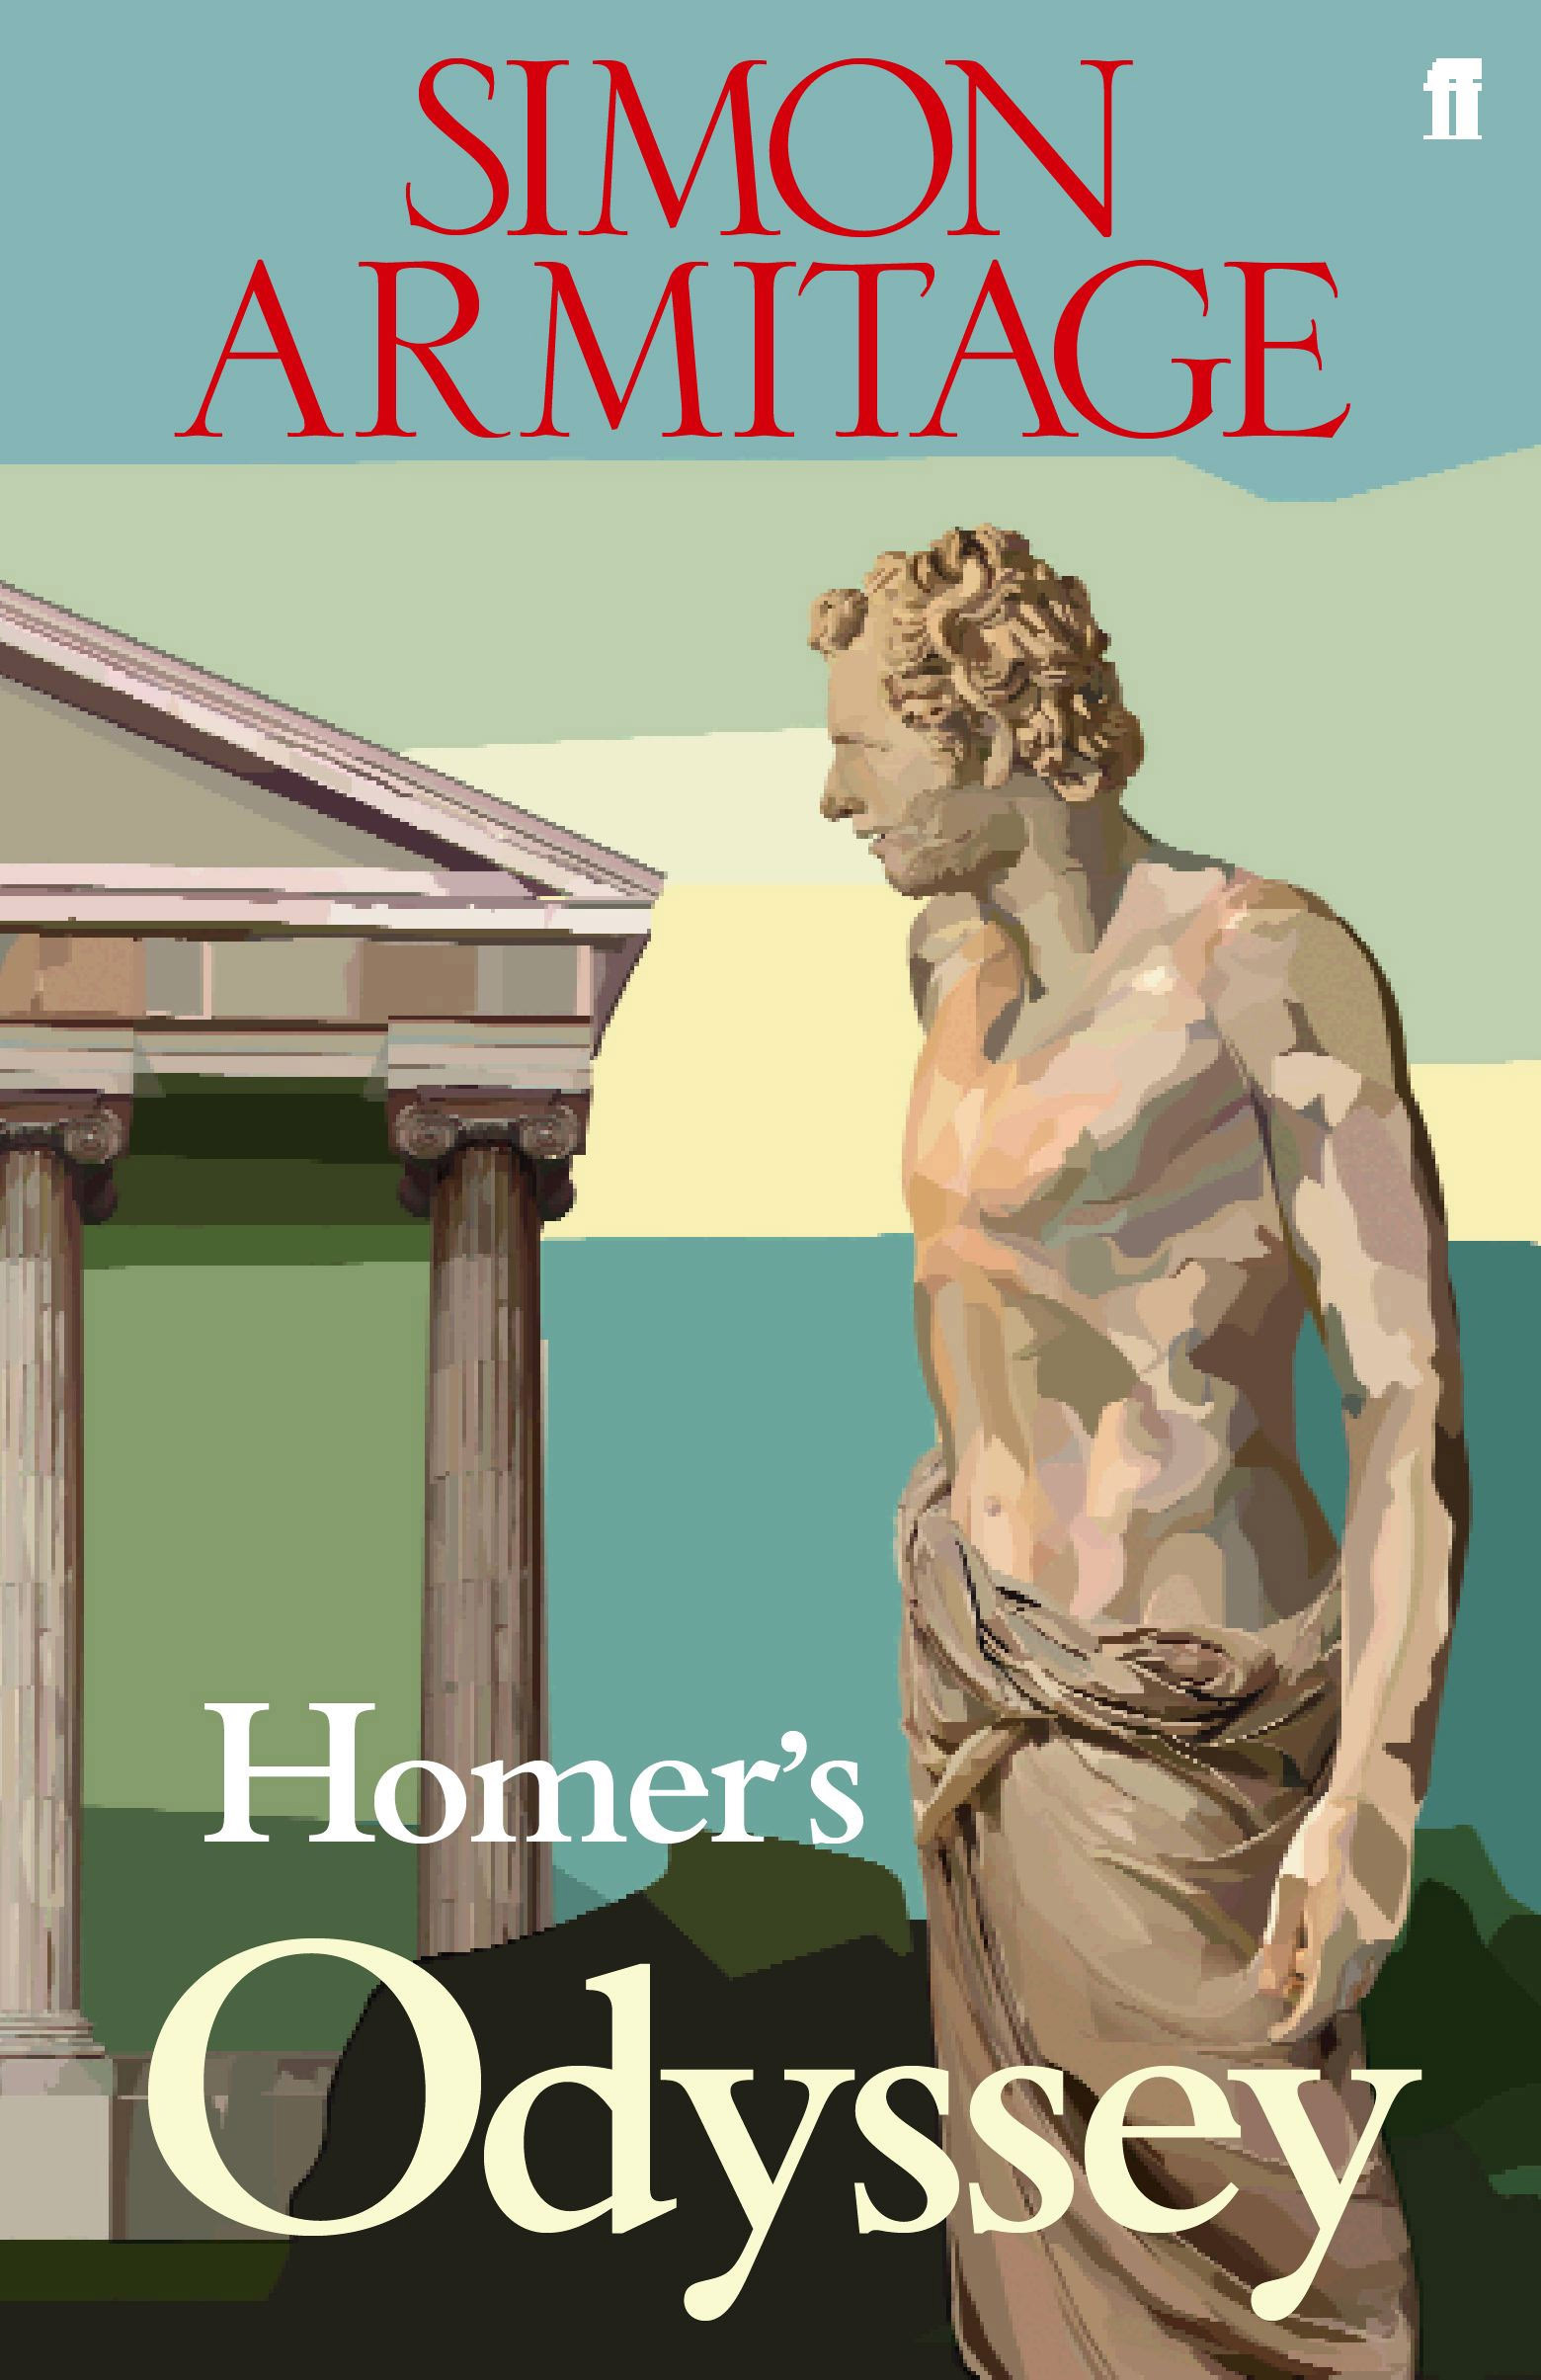 an analysis of greeks vengeance in homers the odyssey Pseudodementia, malingering and revenge in ancient greece:  summary: the  kidnapping of helen of troy triggered a military alliance within greece  homer  however there were many events before and after the trojan war of which we.